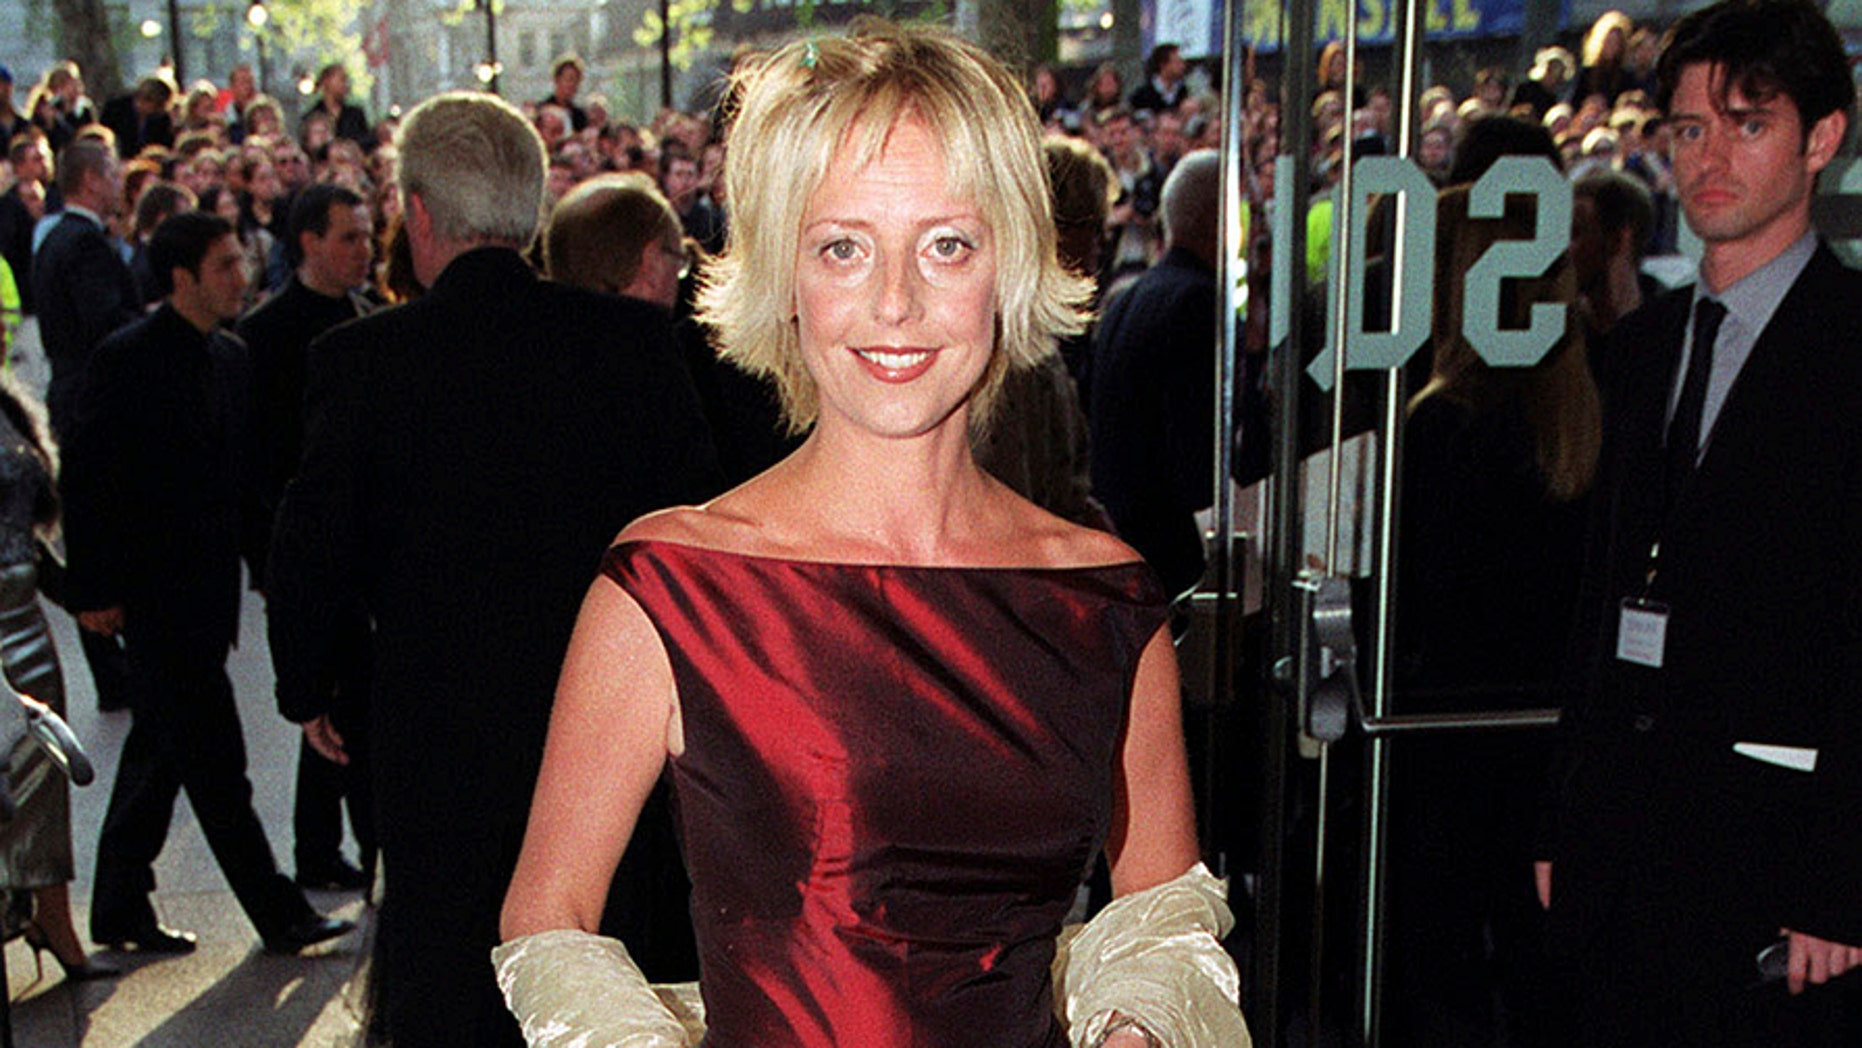 """FILE - In this file photo dated April 27, 1999, British actress Emma Chambers on the des carpet in London.   The actress known for her roles in TV series """"The Vicar of Dibley"""" and the movie """"Notting Hill"""", Chambers has died of natural causes at the age of 53, according to an announcement from her agent John Grant, Saturday Feb. 24, 2018. (Peter Jordan/PA FILE via AP)"""